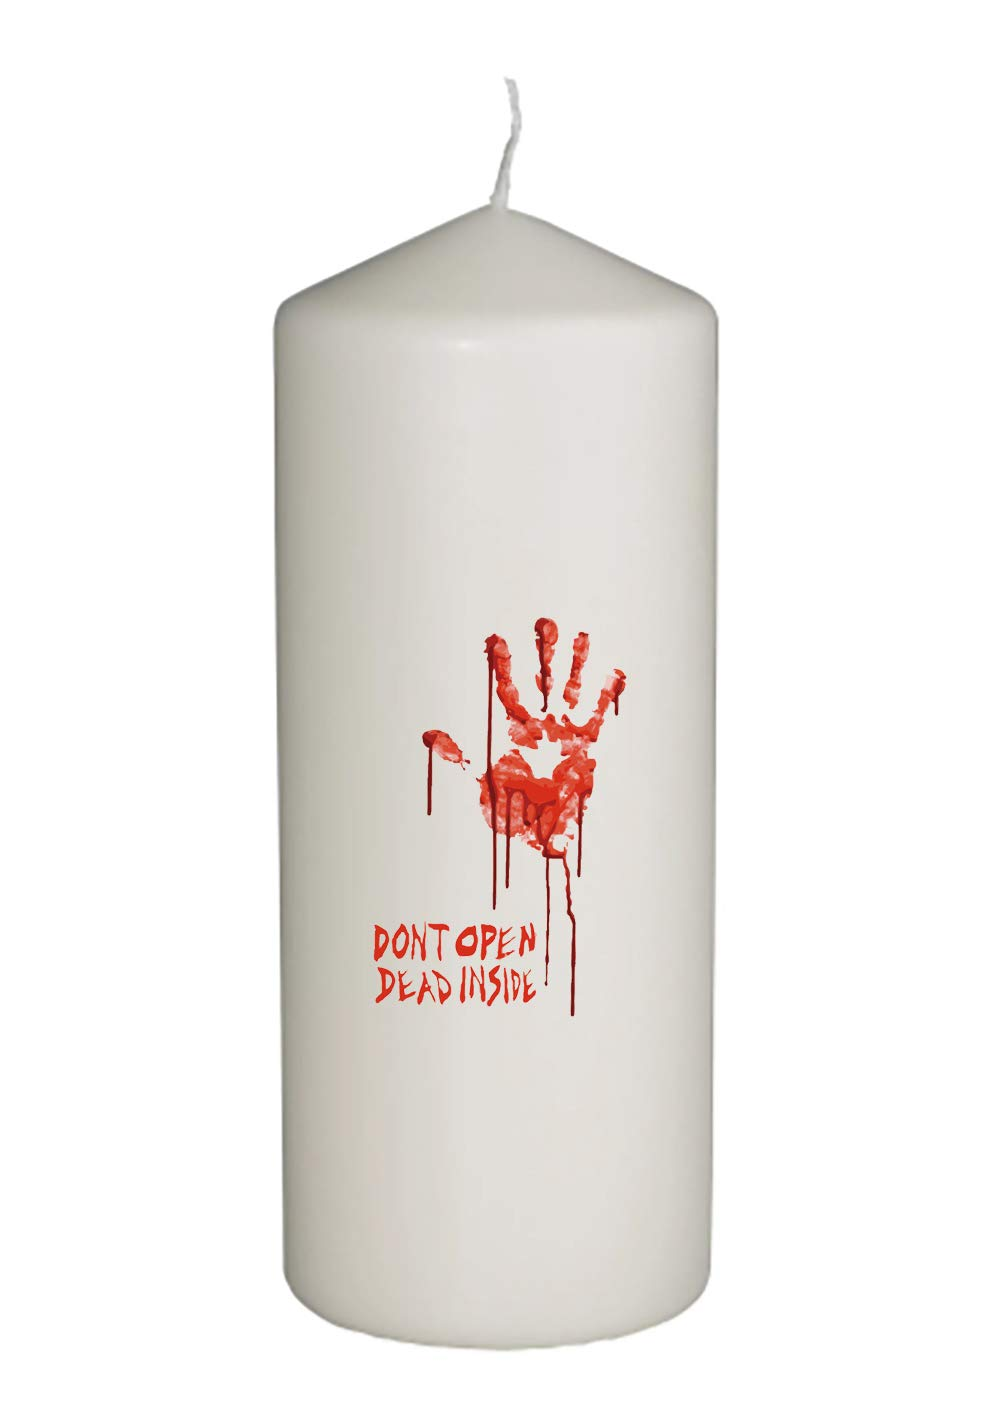 Bloody Dead Zombie Hand Don't Open Dead Inside in Full Color Unity Candle - Wedding, Baptism, Funeral, Special Event Decoration (6 inches Tall)